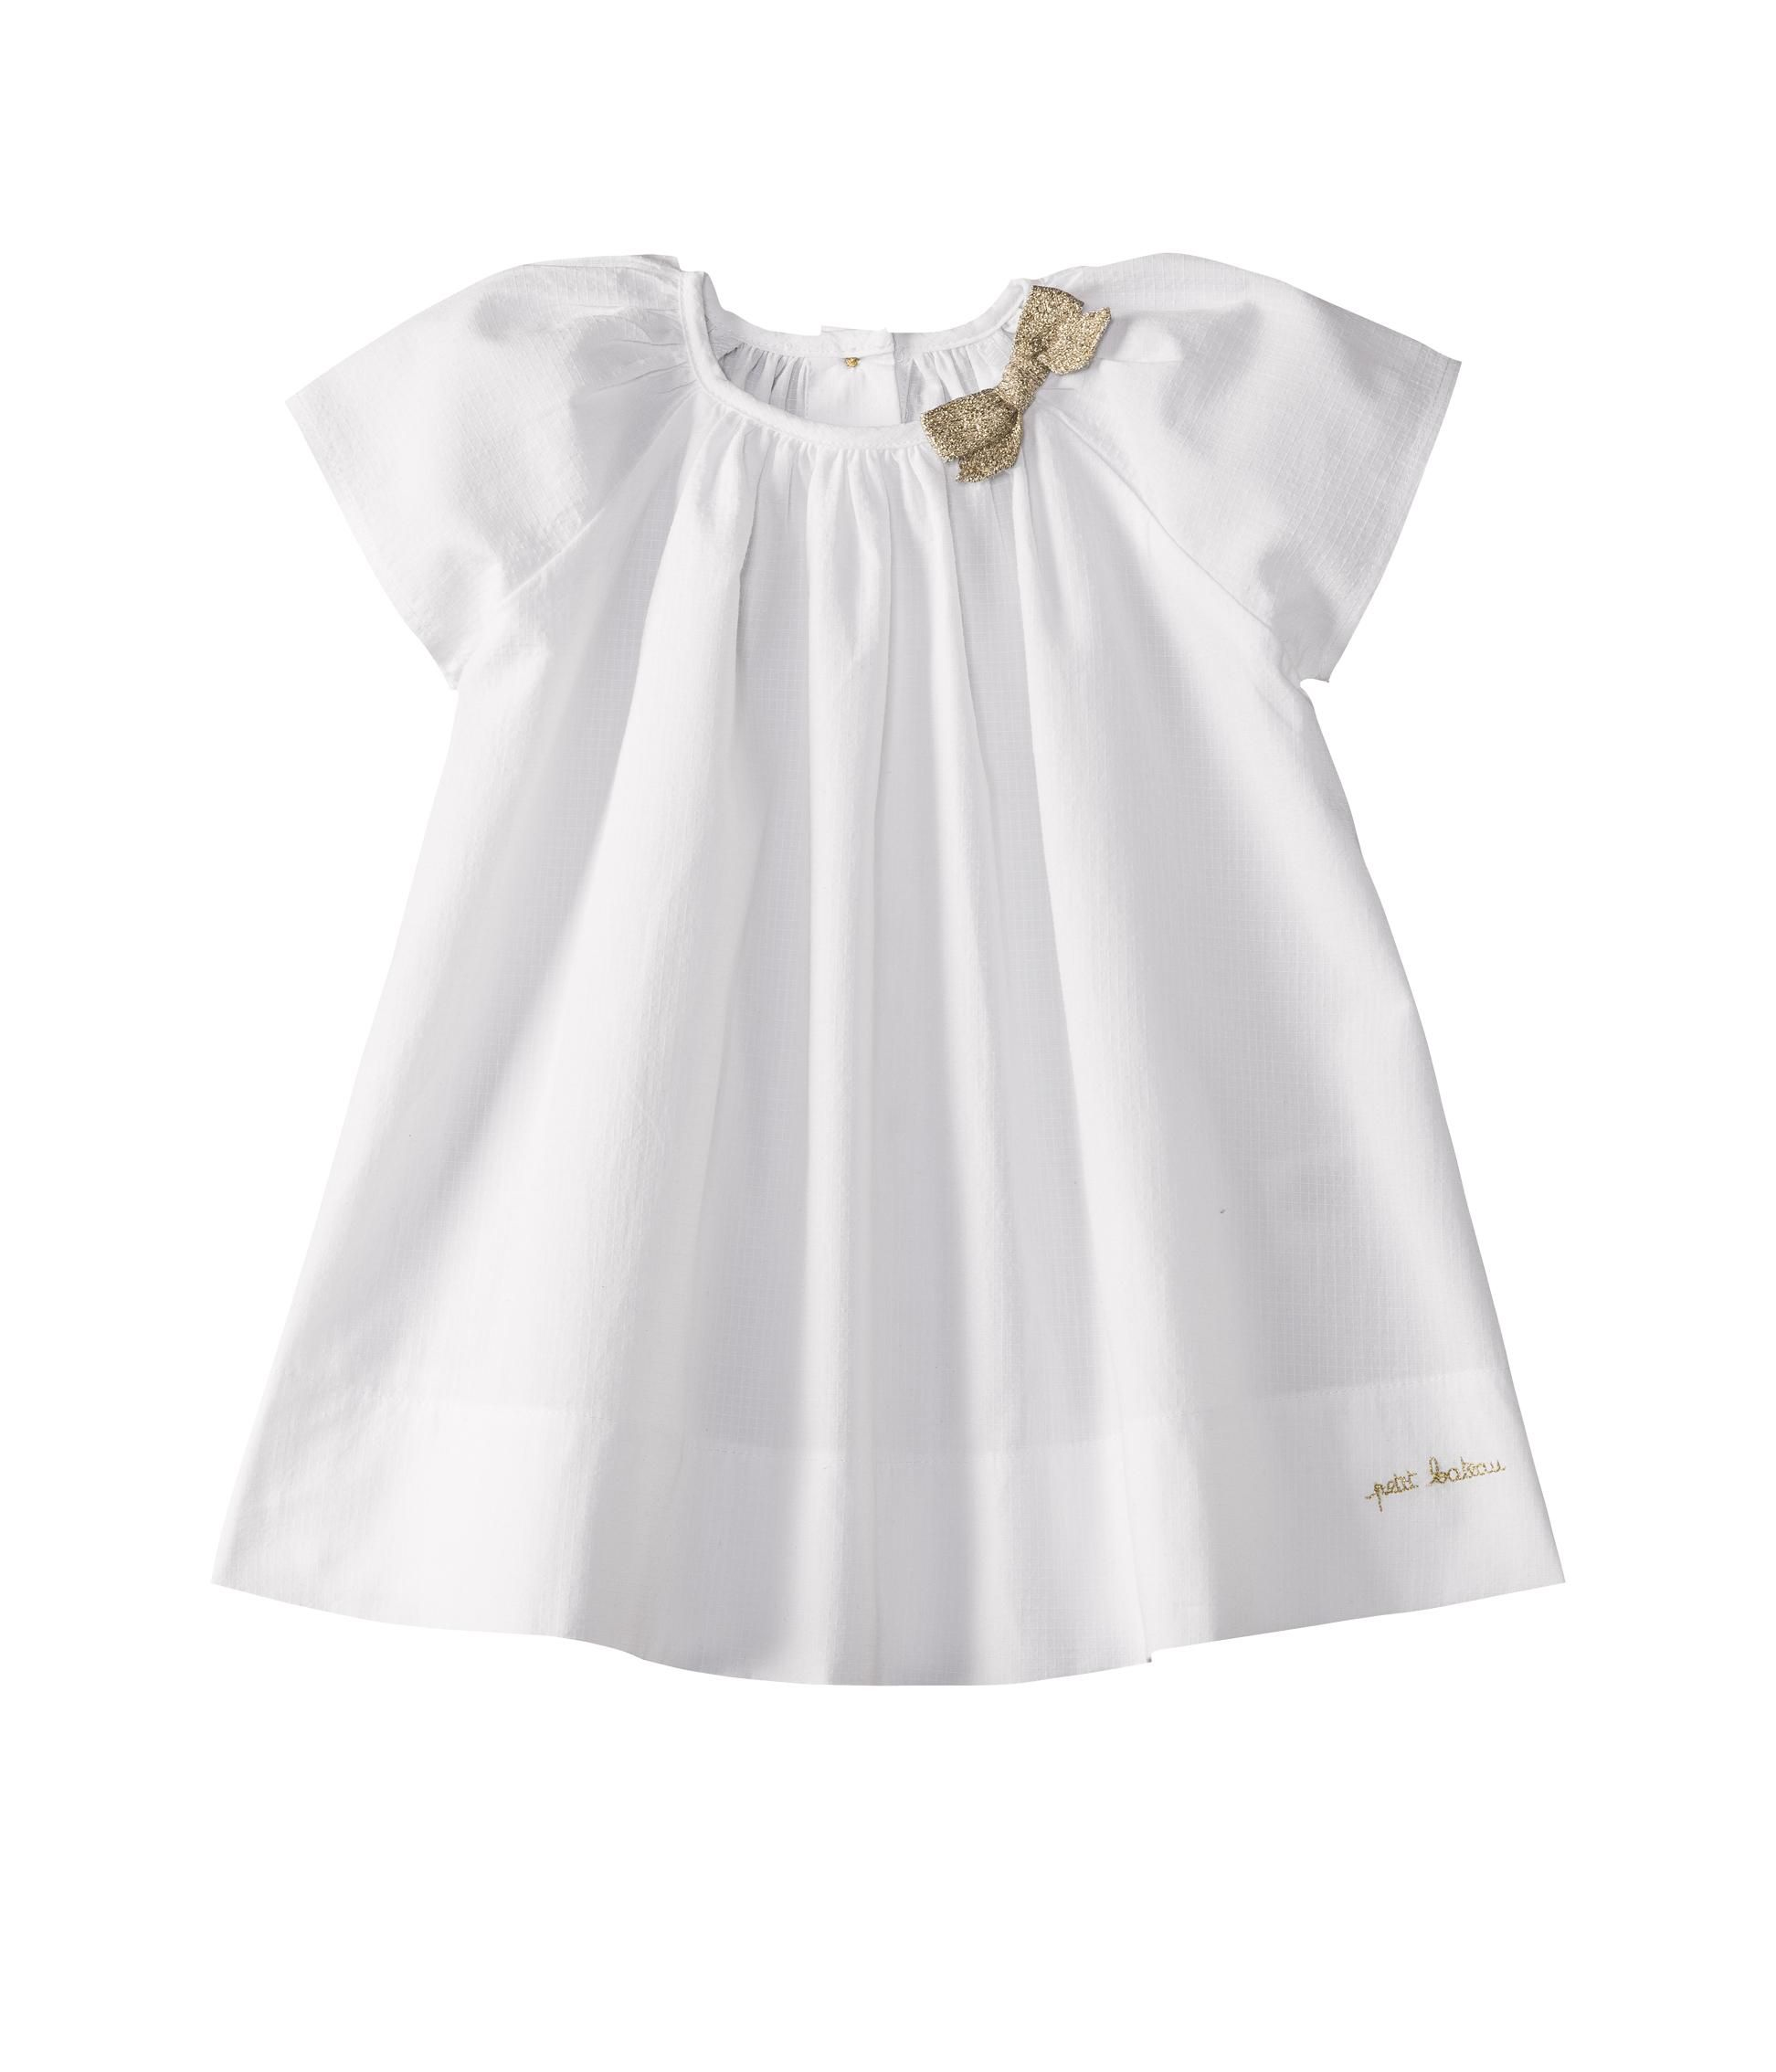 Baby girl dress with butterfly sleeves